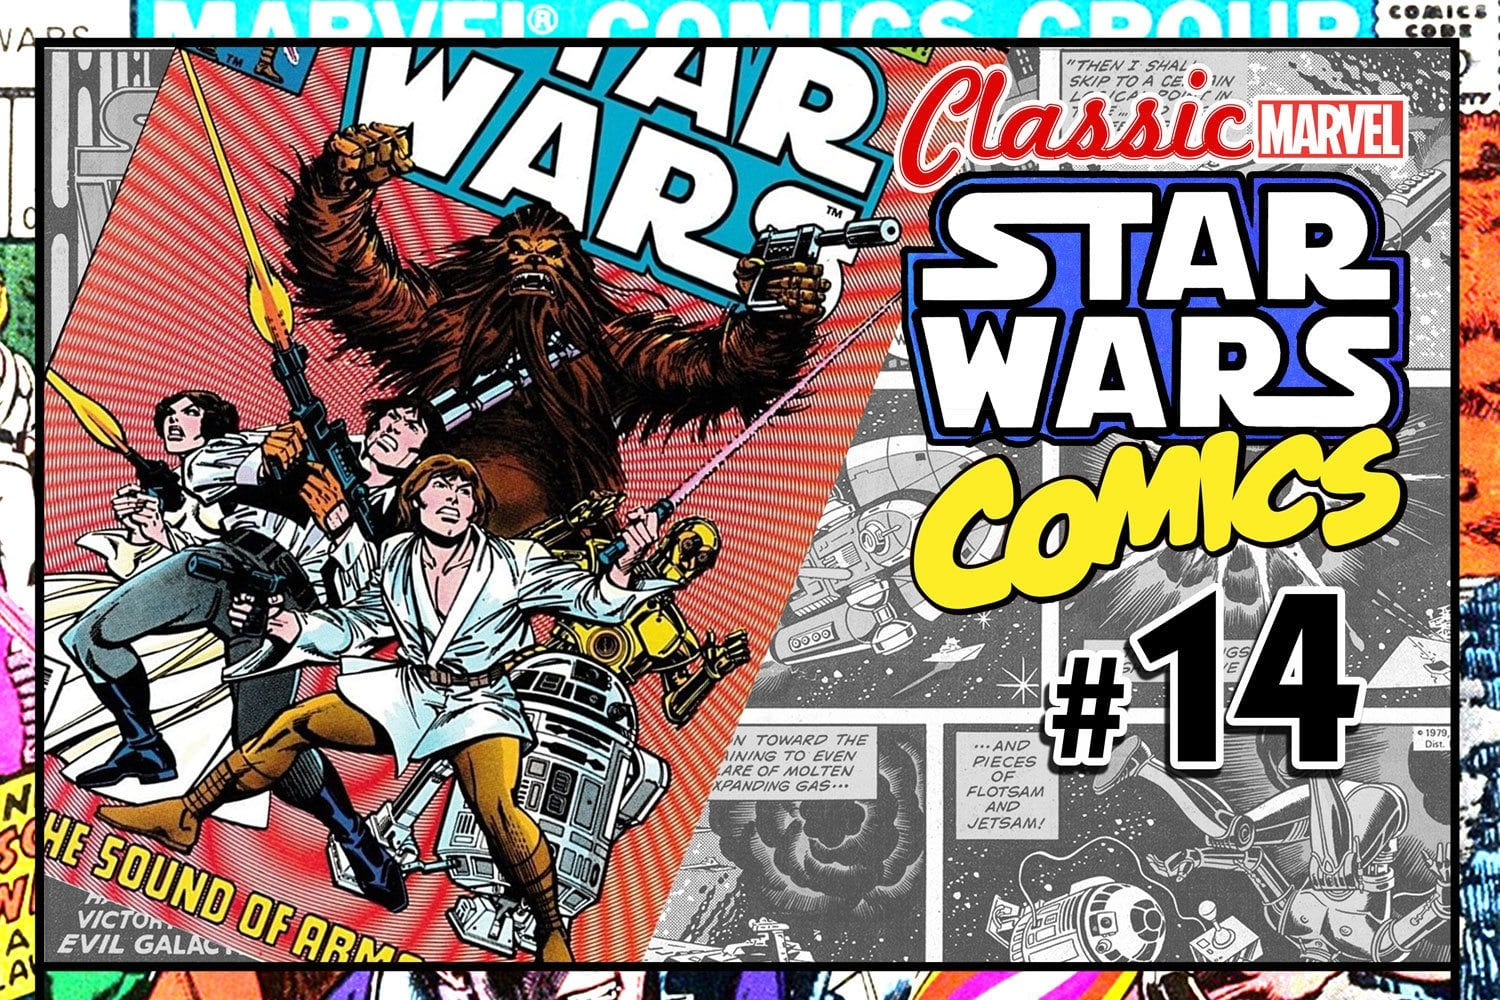 Classic Marvel Star Wars Comics #14: The Sound of Armageddon